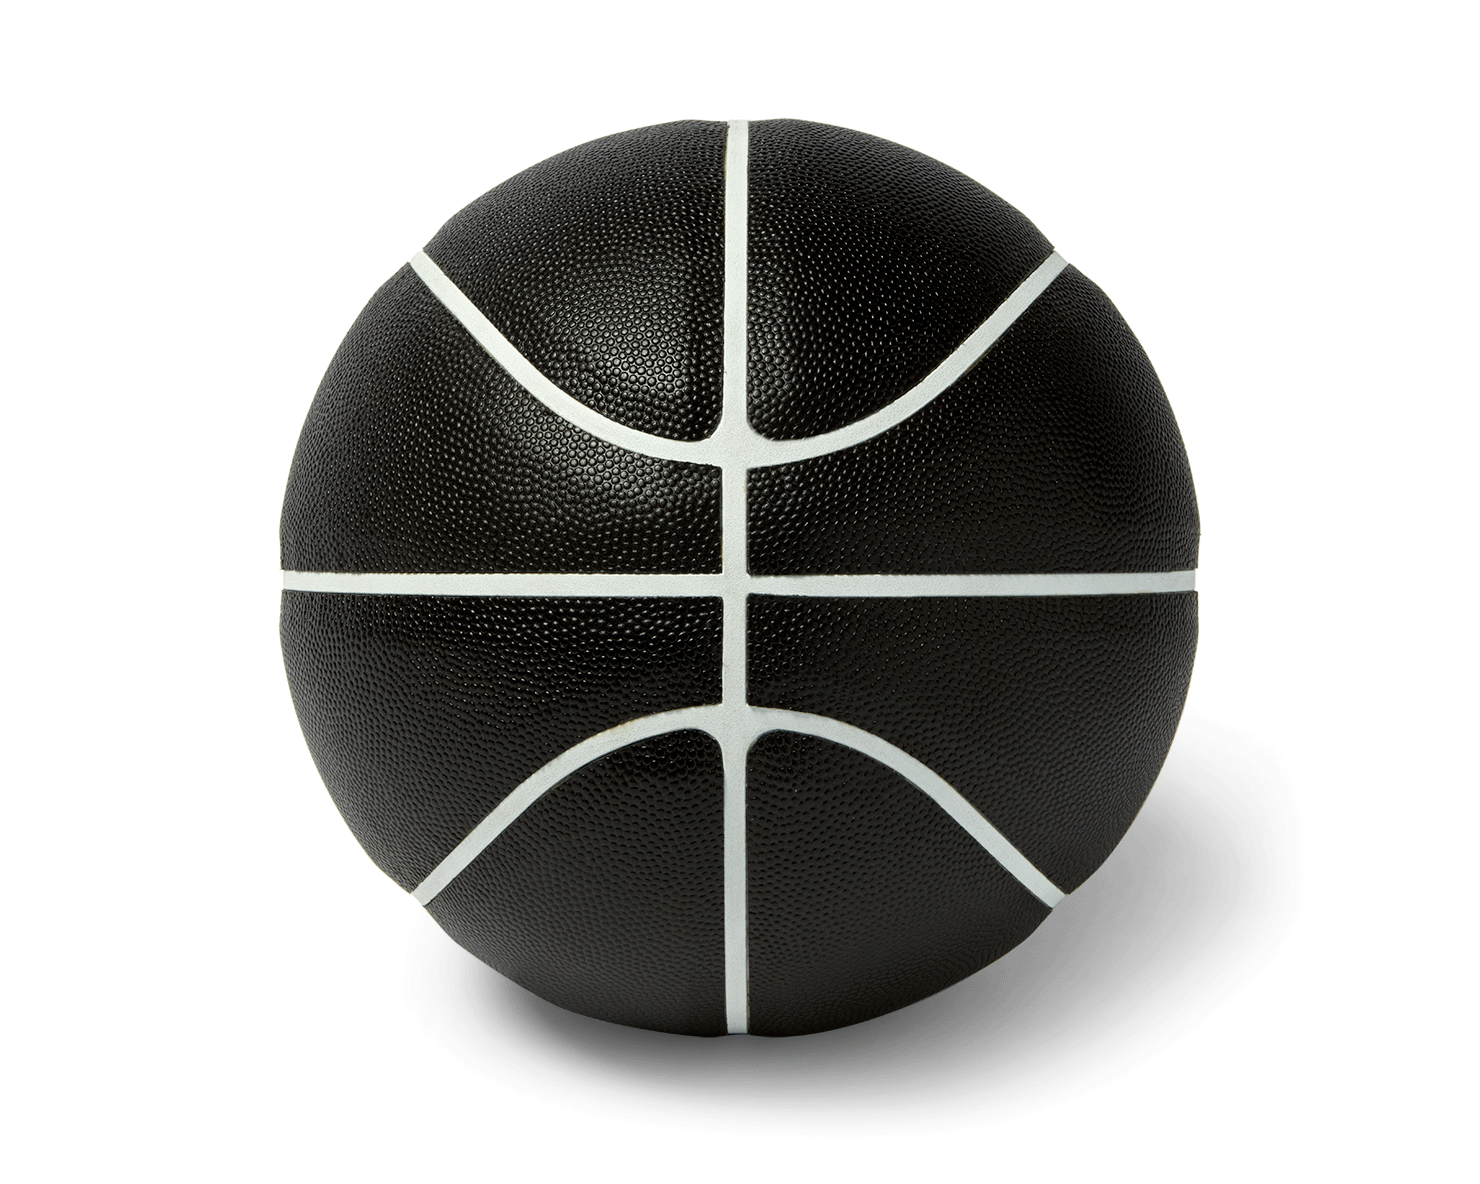 INDOOR FULL-SIZE BASKETBALL | KILLSPENCER® - Black Horween Leather with White Grip